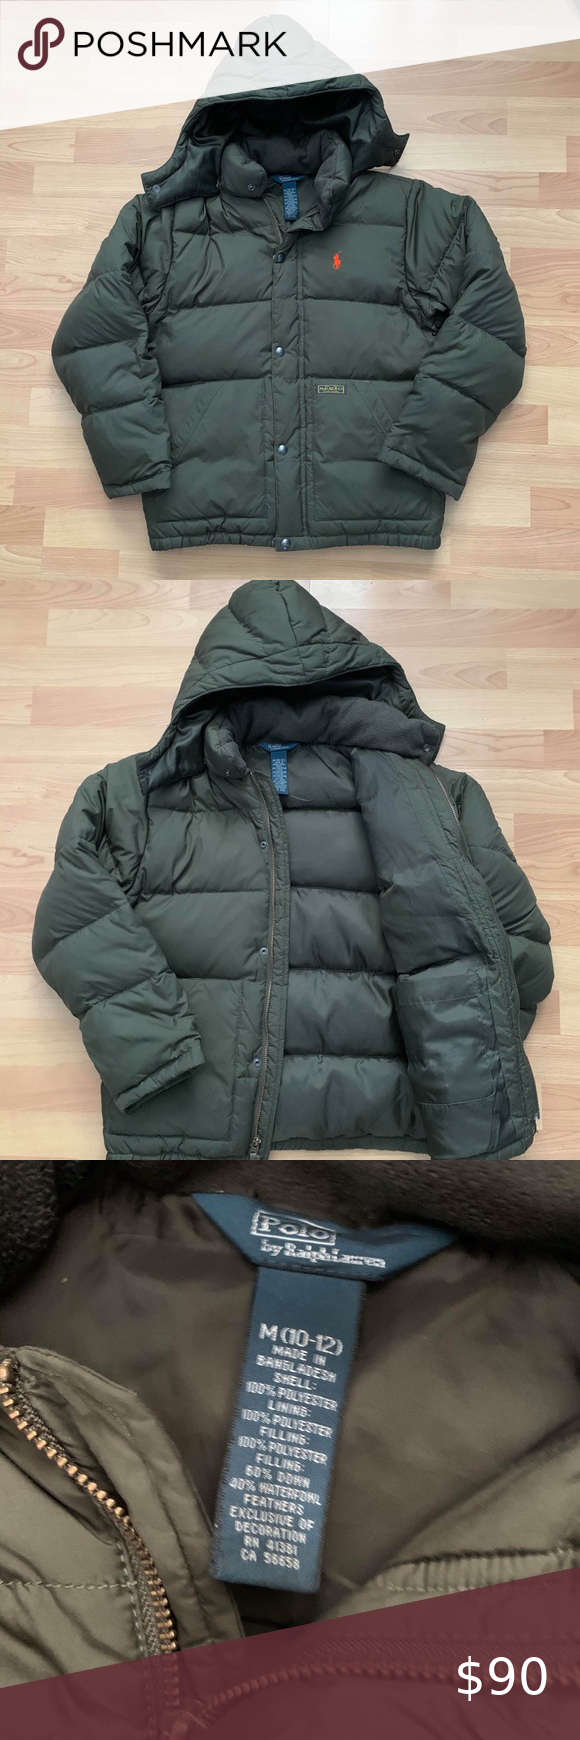 Polo Ralph Lauren Navy Green Youth Winter Jacket Polo Ralph Lauren Navy Green Button Zipper Up Winter Jacket Youth Winter Jackets Winter Jackets Navy And Green [ 1740 x 580 Pixel ]